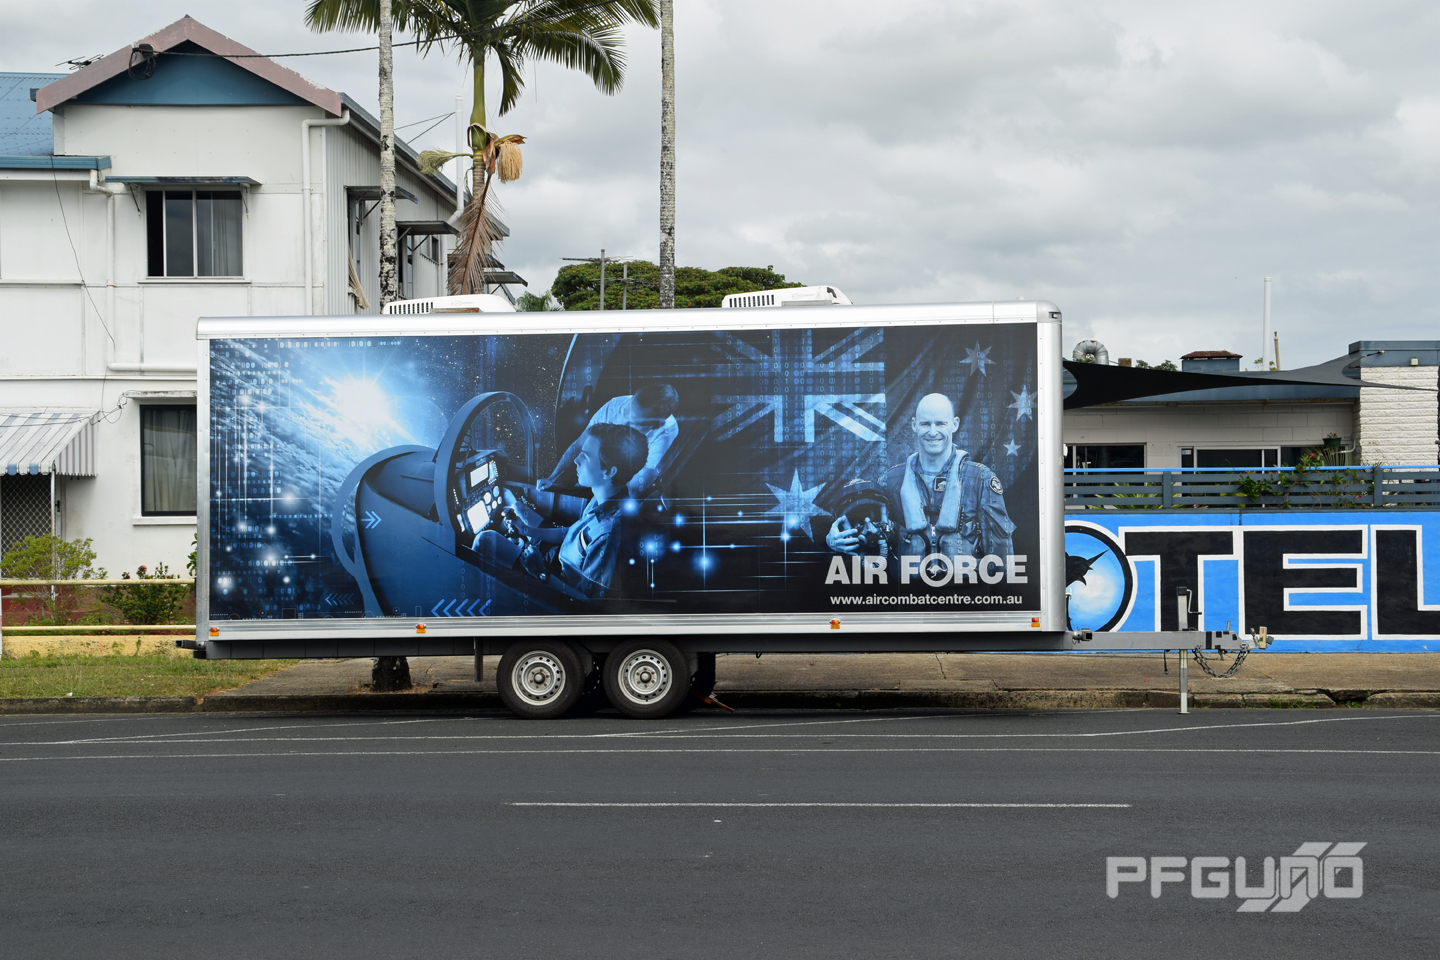 The Air Force Trailer